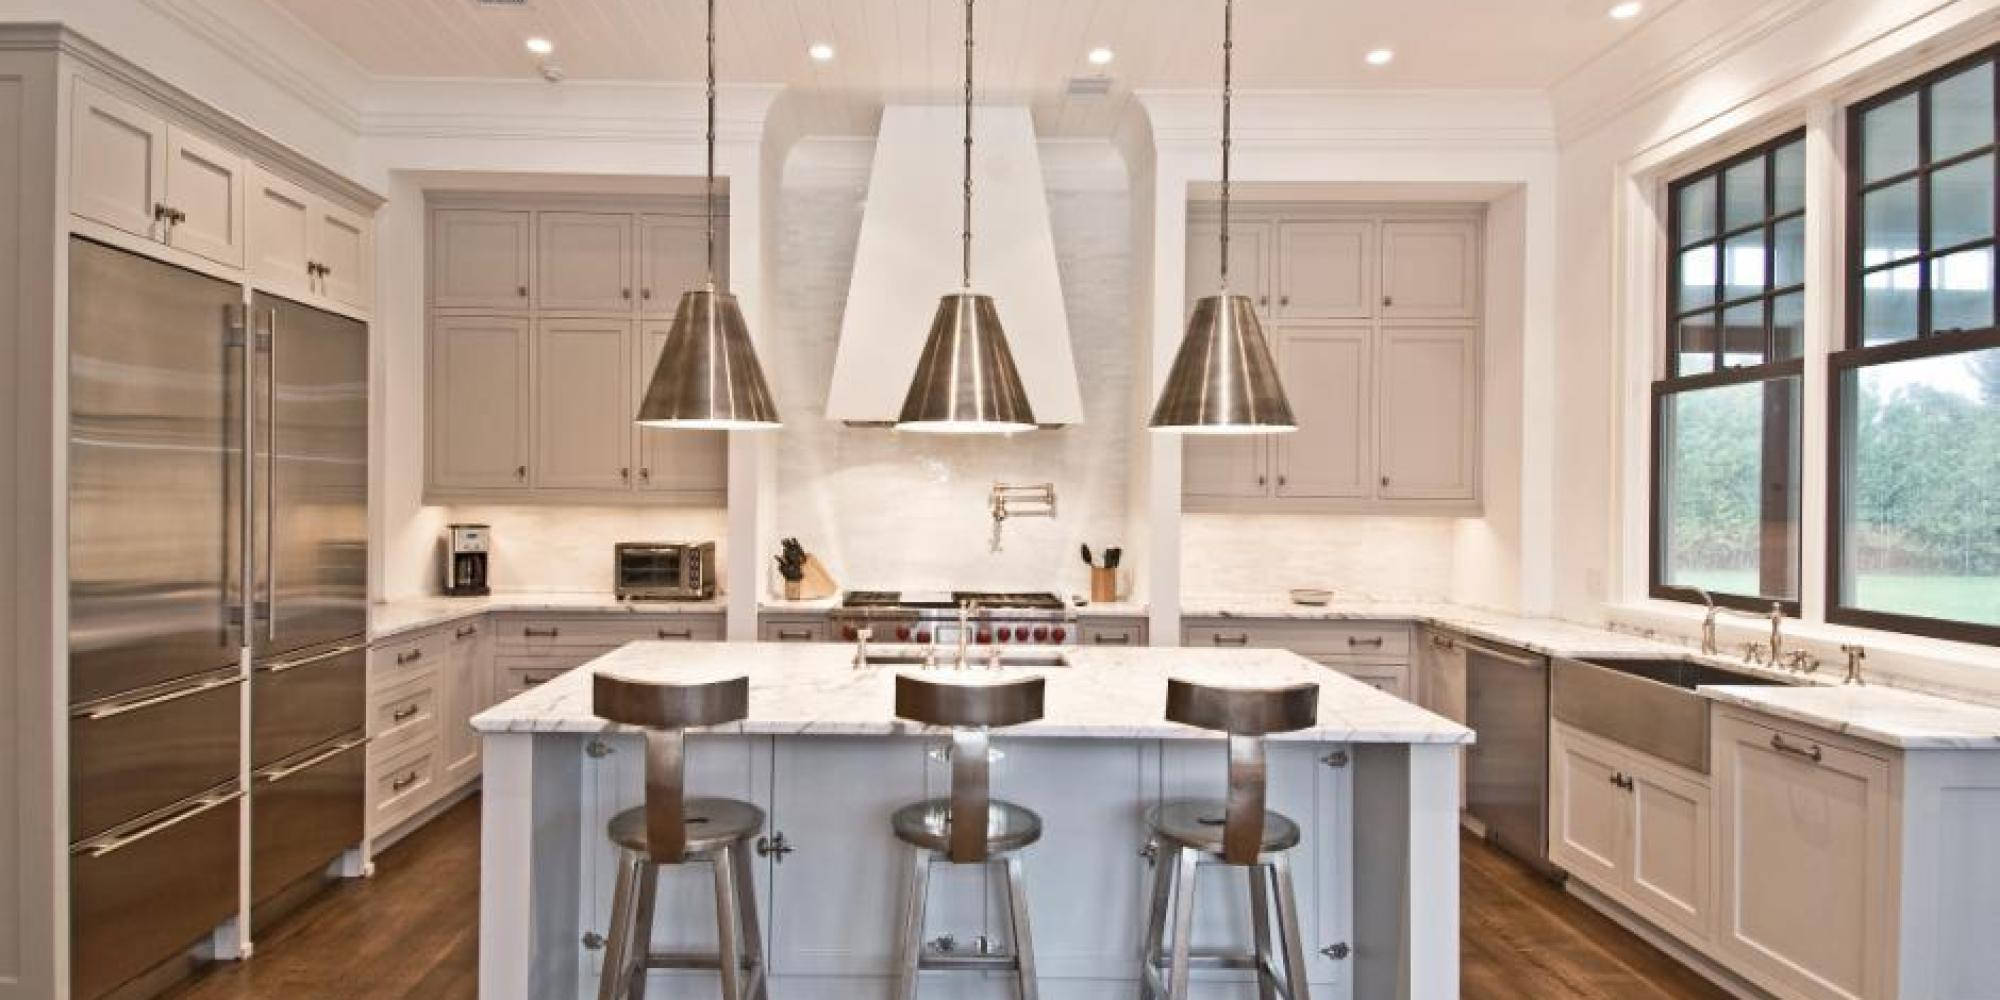 White Kitchen Paint Colors the best paint colors for every type of kitchen | huffpost